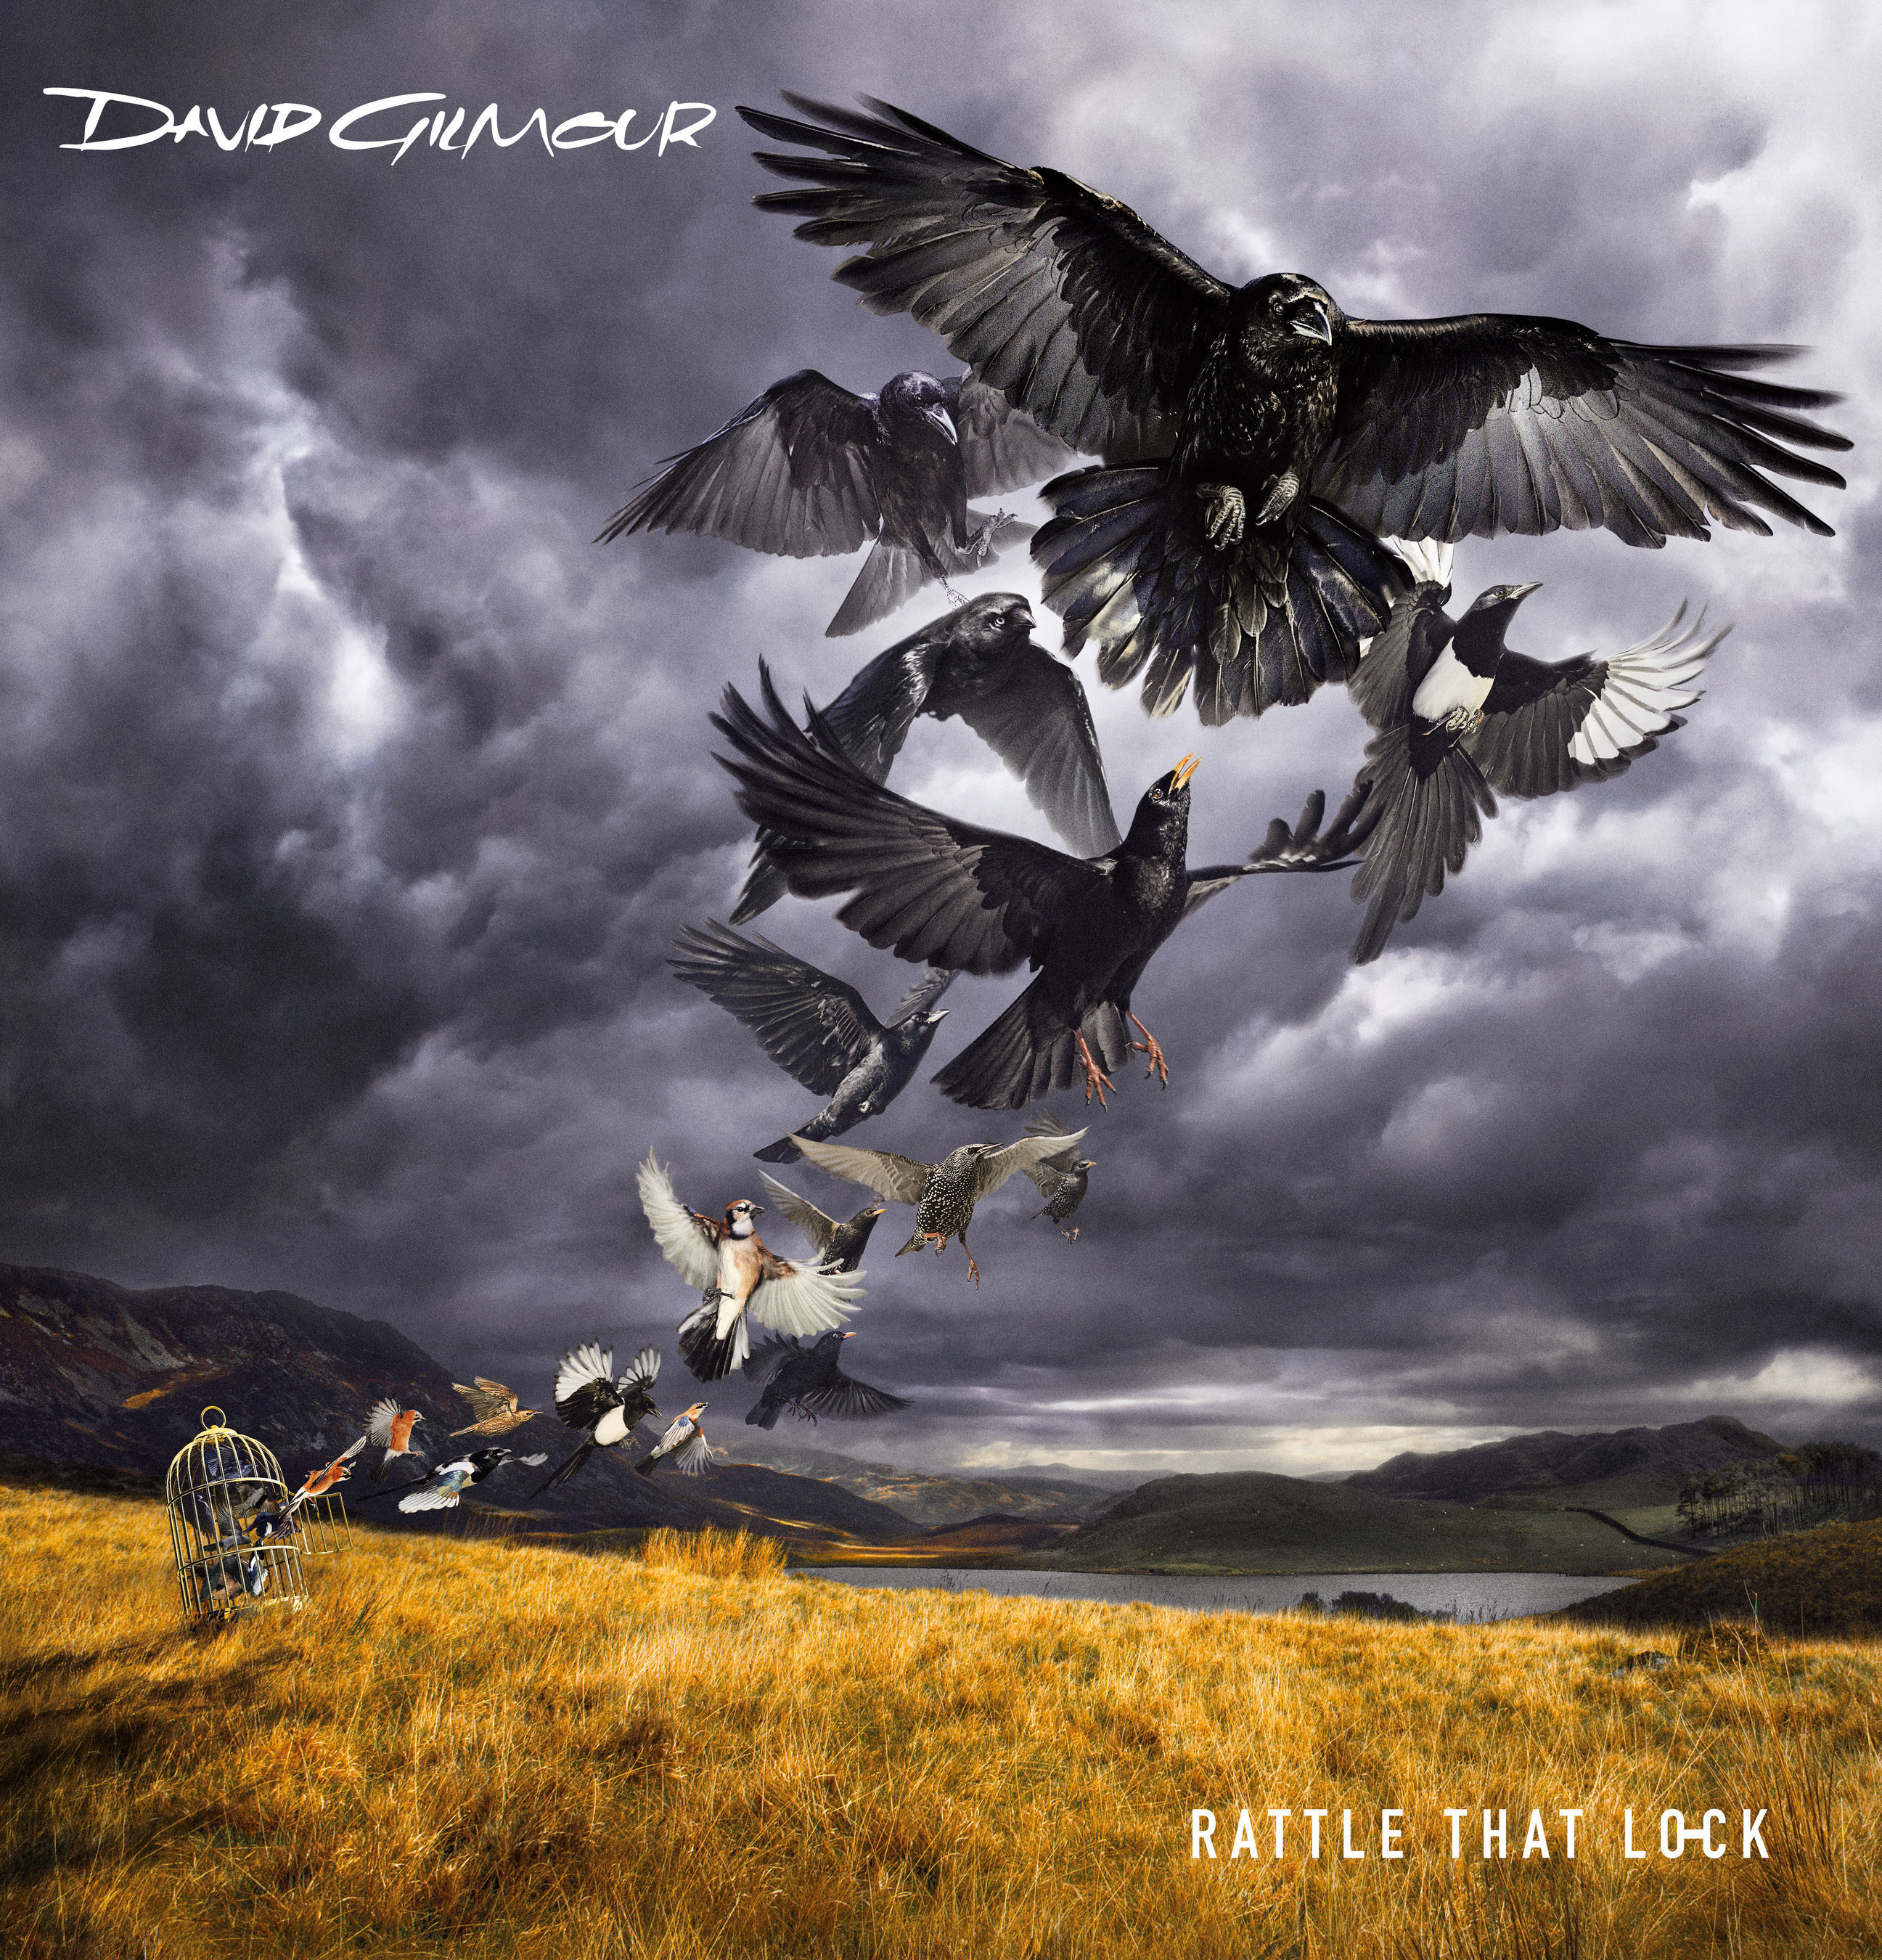 David Gilmour To Release New Album, 'Rattle That Lock' Friday, September 18, 2015